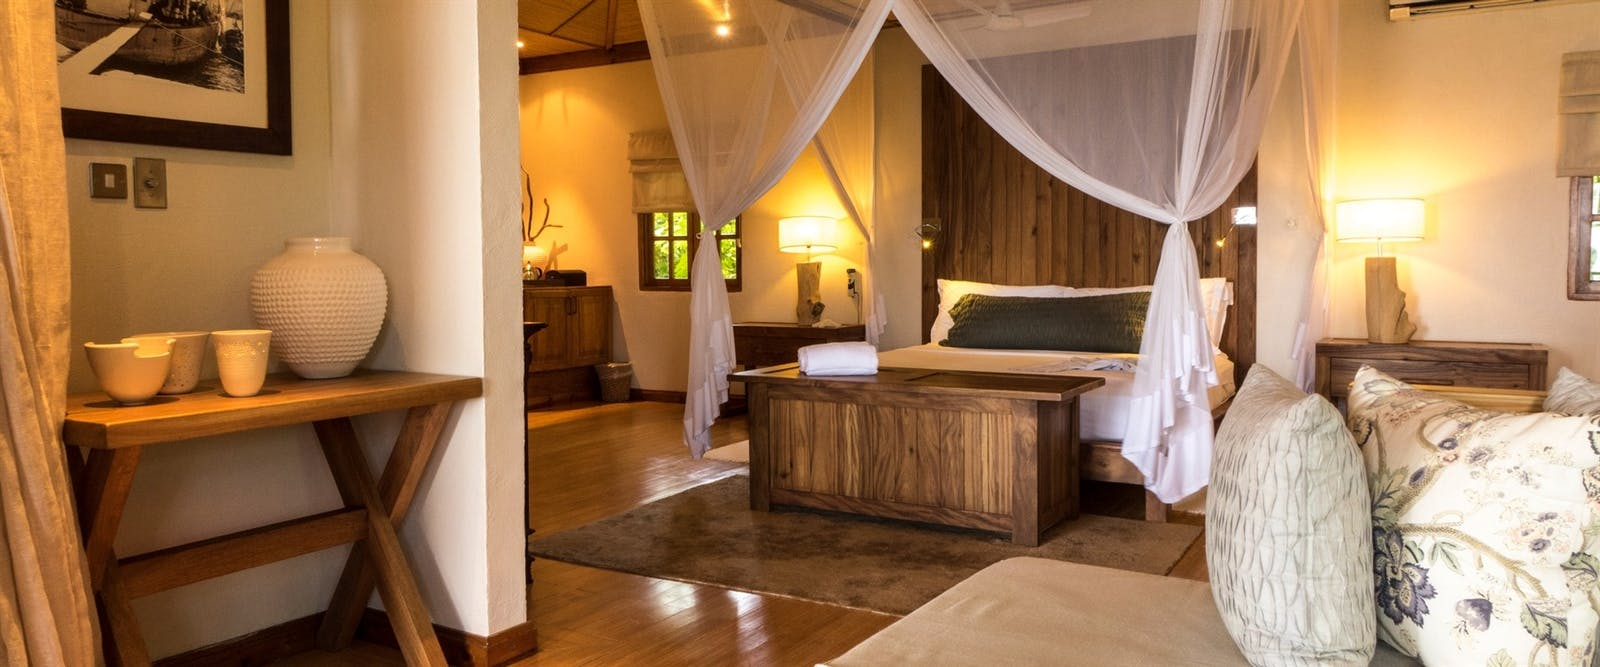 Beach Villa Bedroom at Denis Private Island, Seychelles